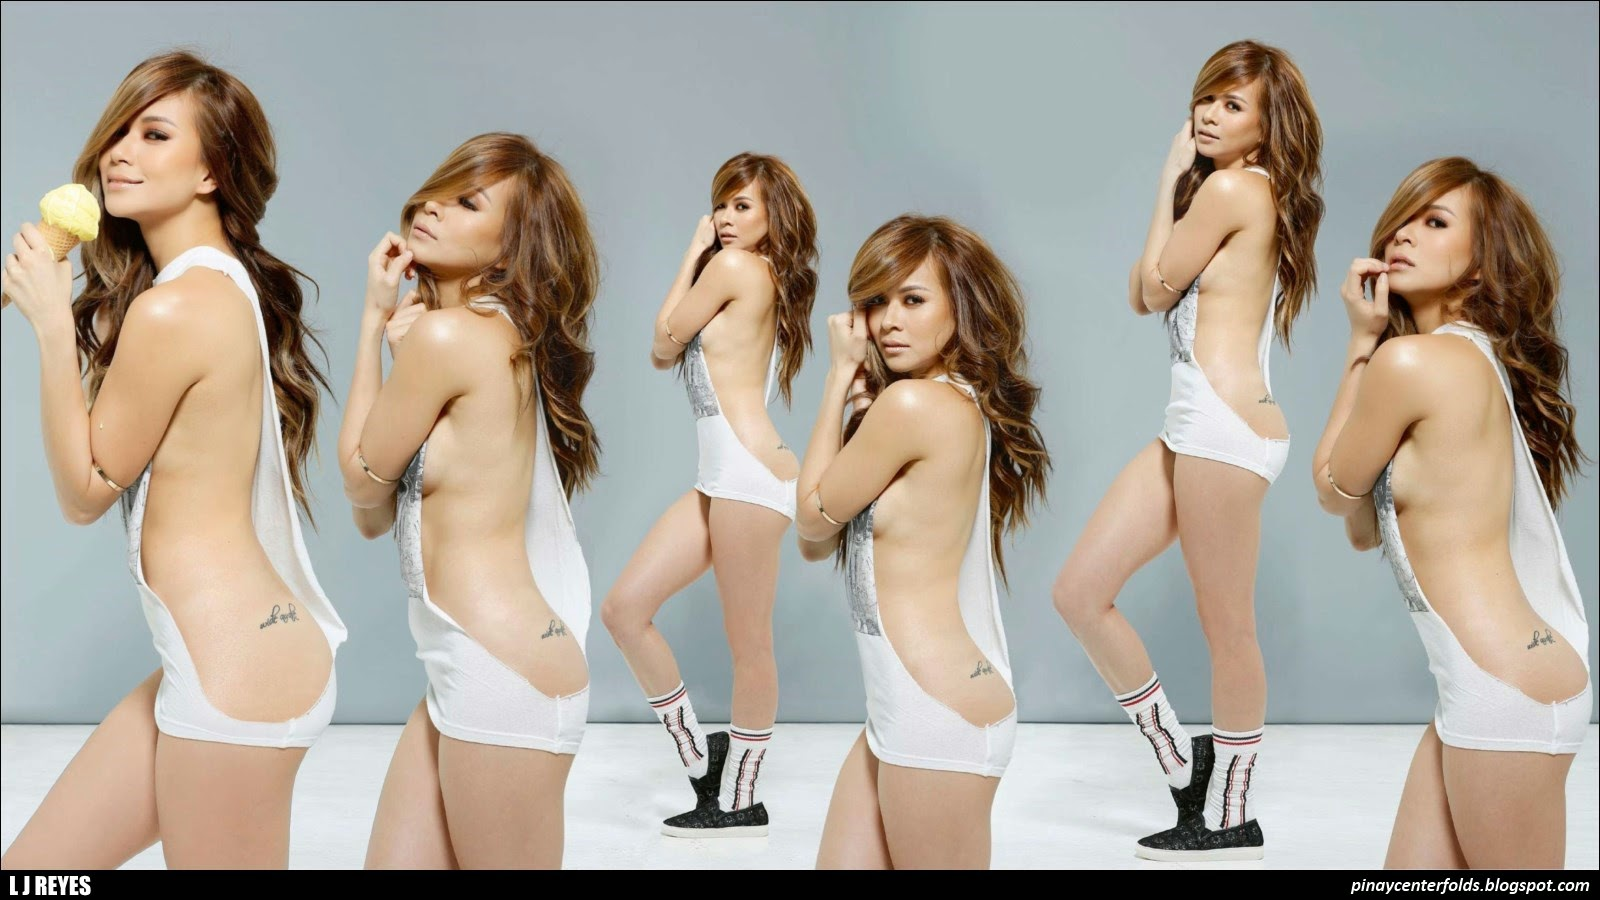 LJ Reyes In FHM Ladies Confessions 2